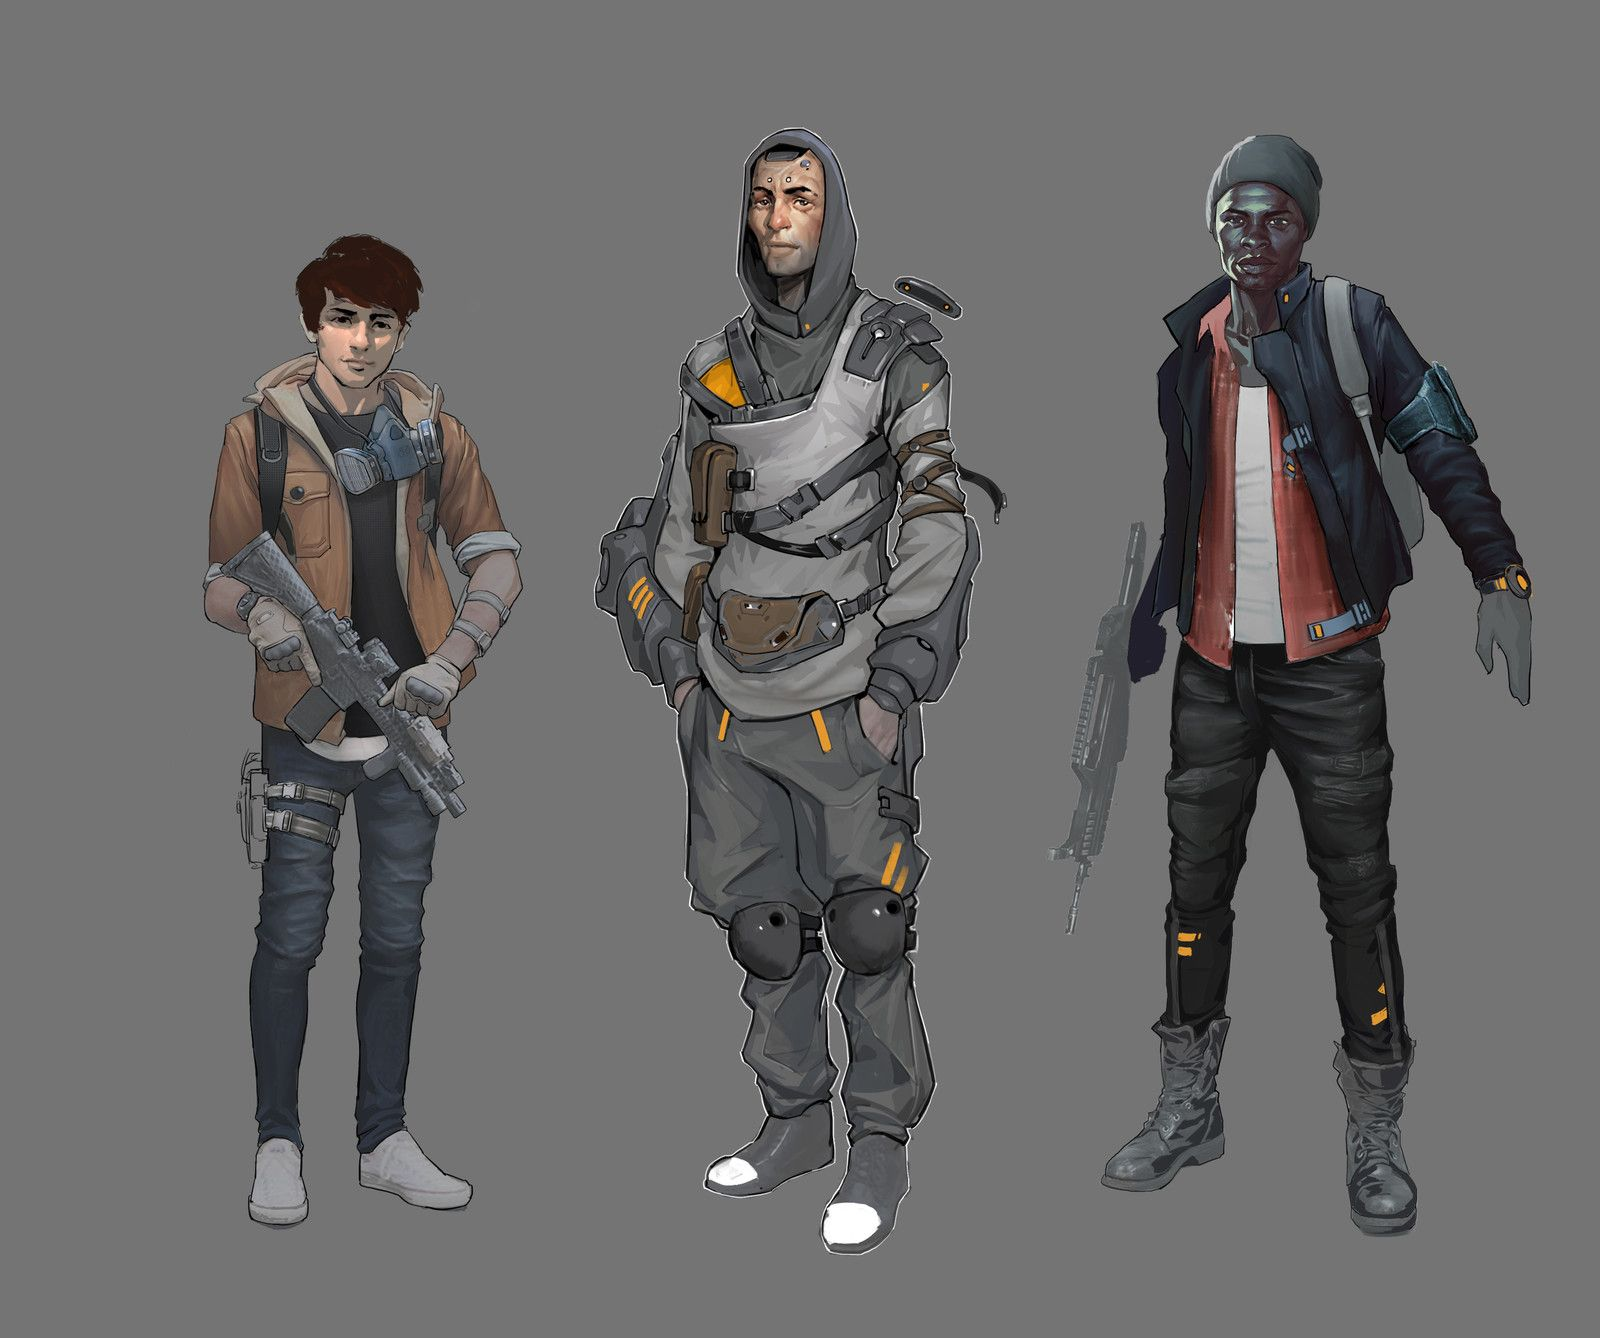 Survivors sketches, Aleksey Scherbakov on ArtStation at https://www.artstation.com/artwork/4lRwq